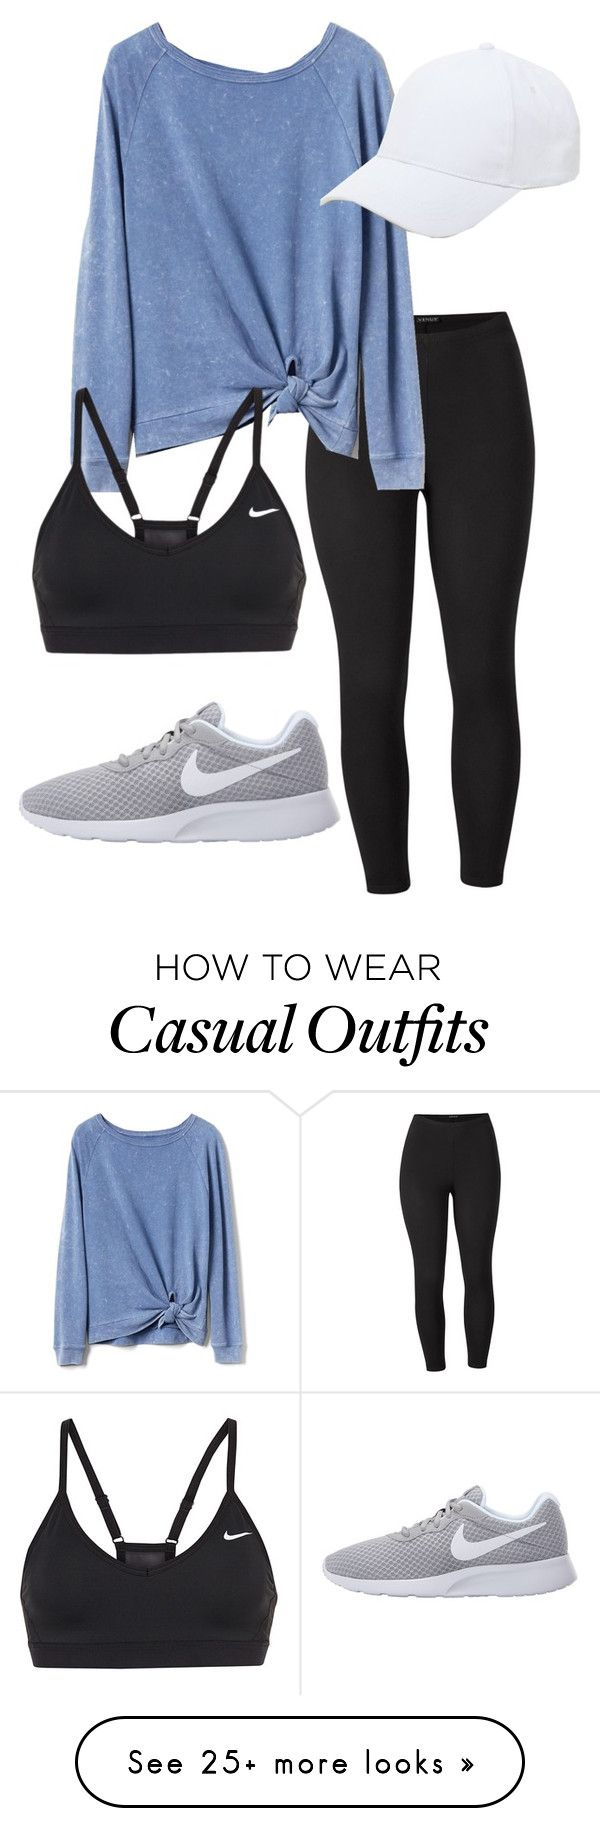 """Everyday Casual look ✔️"" by smhowie on Polyvore featuring Venus, Gap, NIKE, Sole Society and plus size clothing"